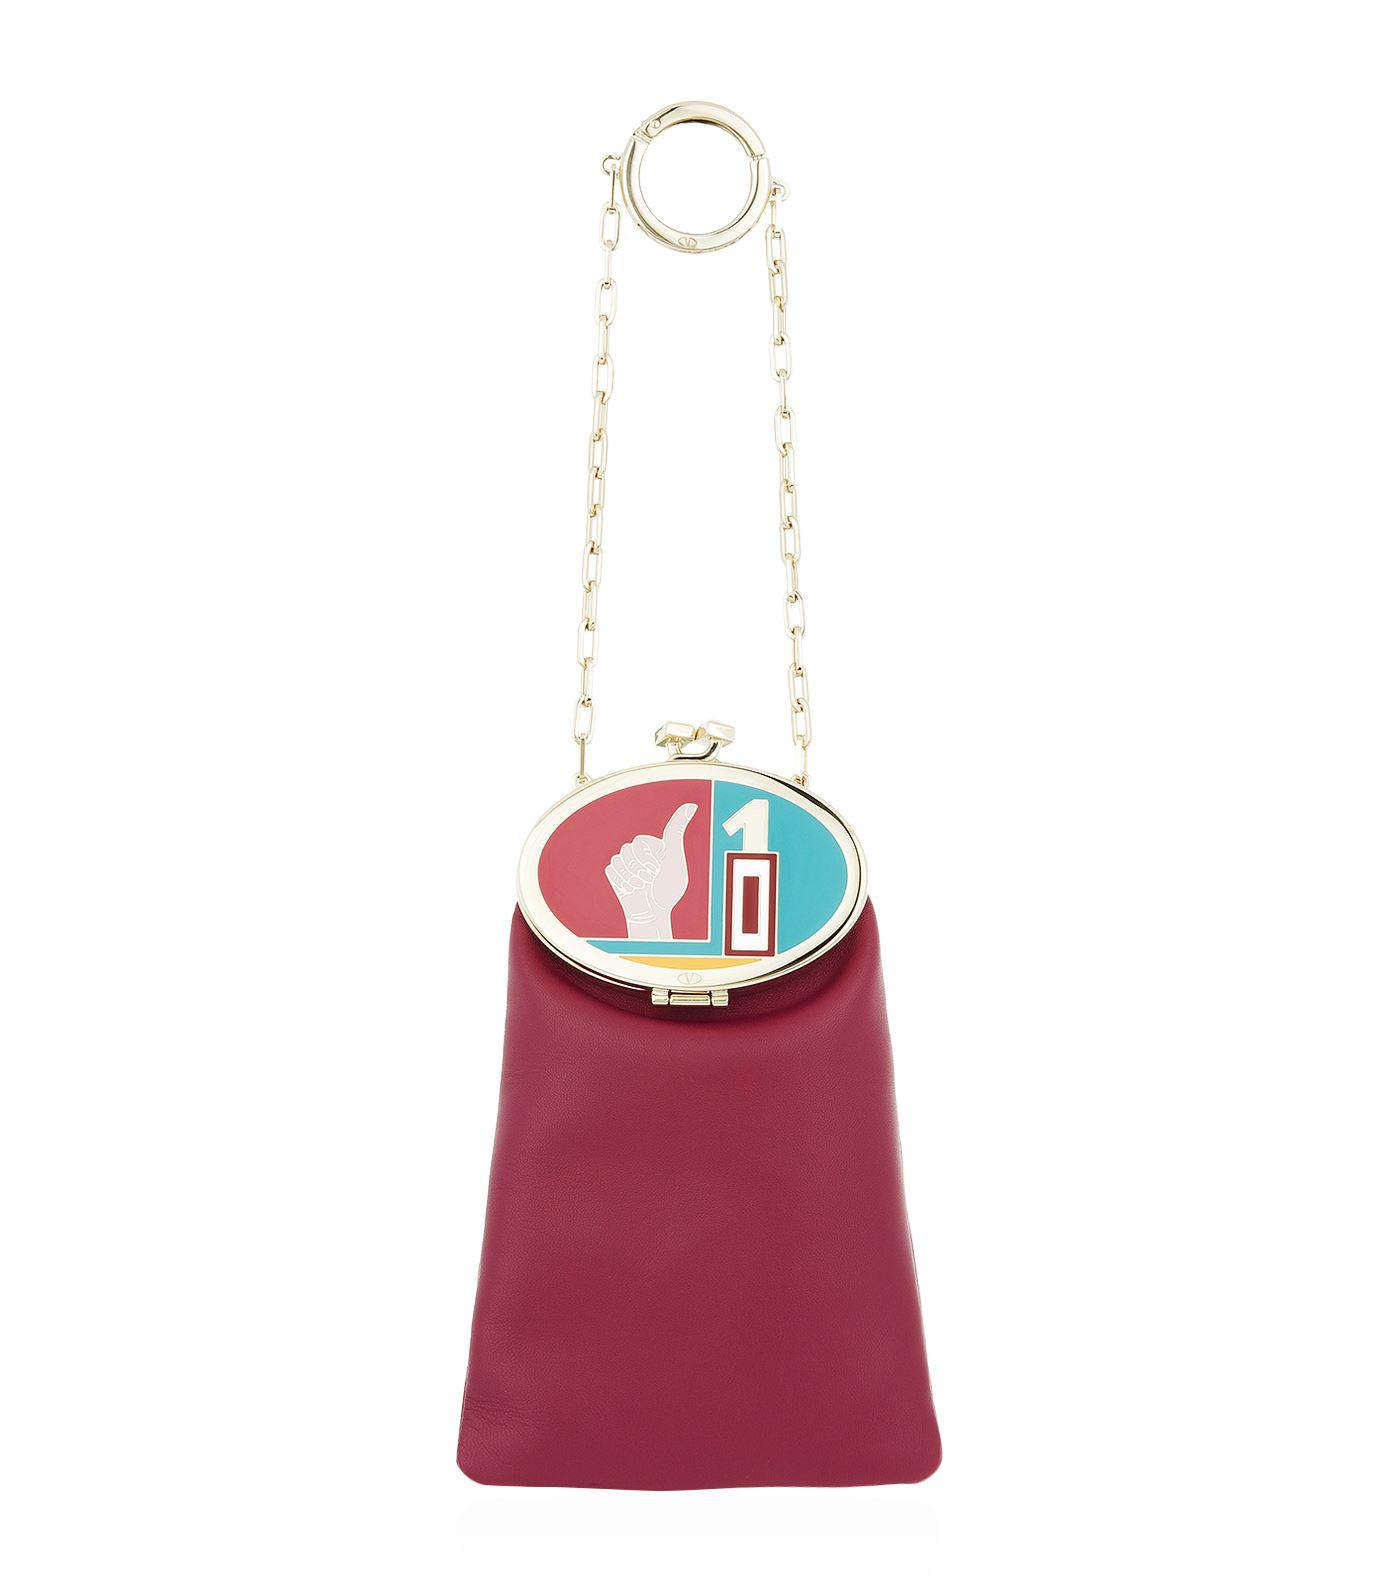 Lyst - Valentino Vanity Bag Charm in Pink c15634420183b